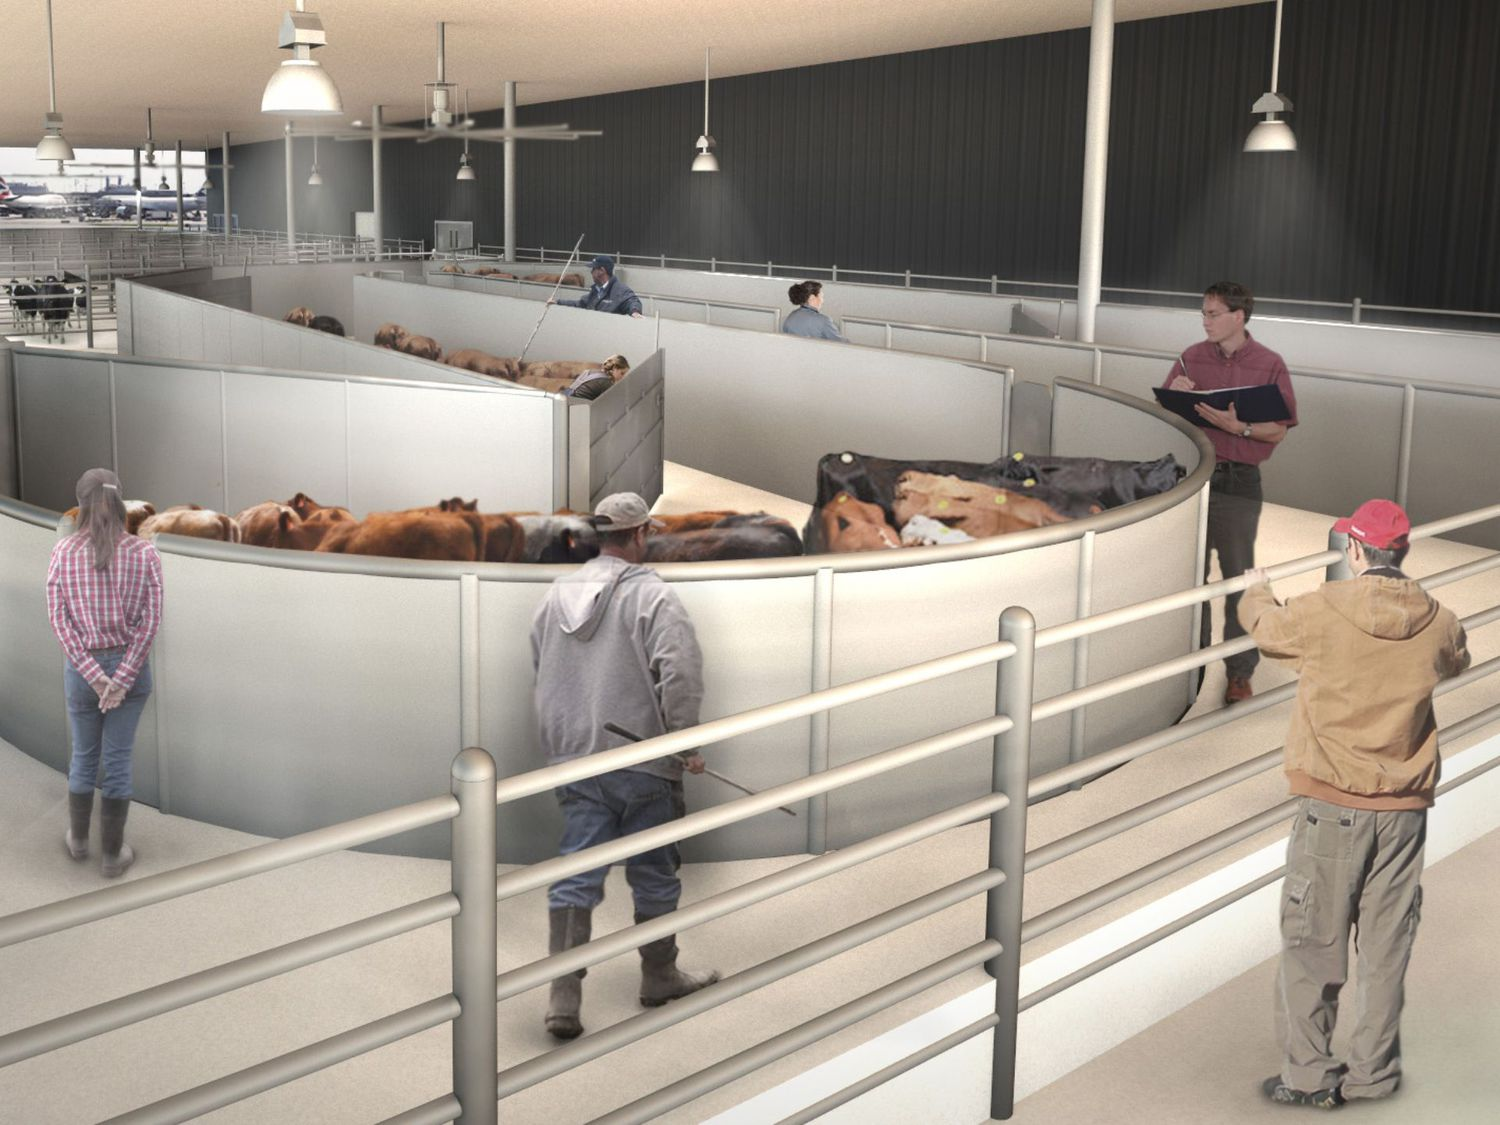 This undated artist rendering courtesy of ARK Development shows a cattle handling area at a new luxury terminal planned for NYC's JFK Airport.